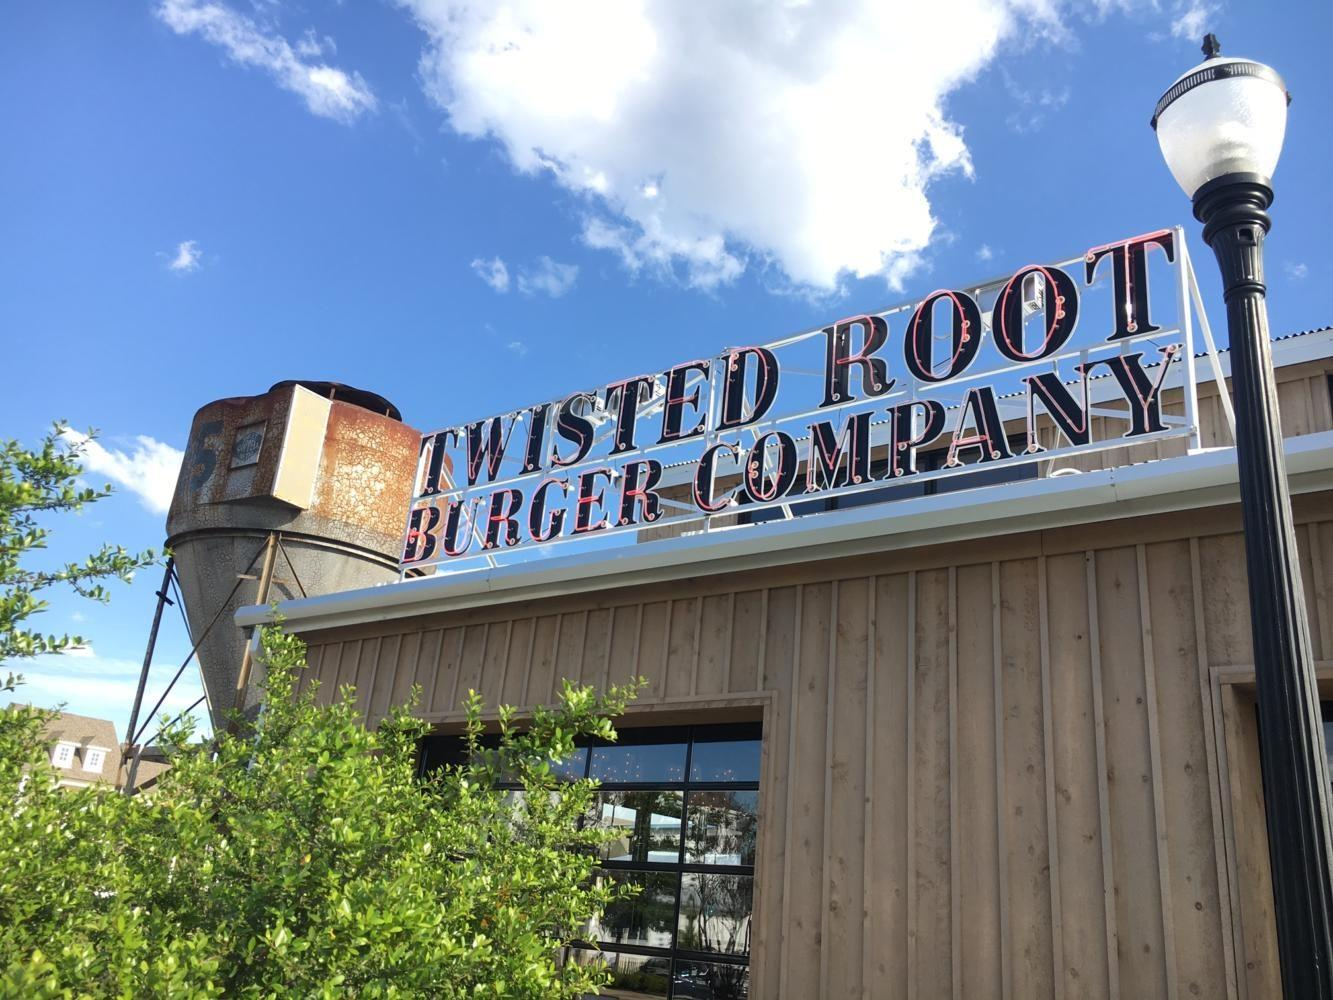 Twisted Root Burger Company located in Old Town Coppell, opened last June. Famous for its eclectic, half pound burgers and handspun shakes, Twisted Root is awarded 'Best Burger' in The Sidekick's Best of Coppell community survey.